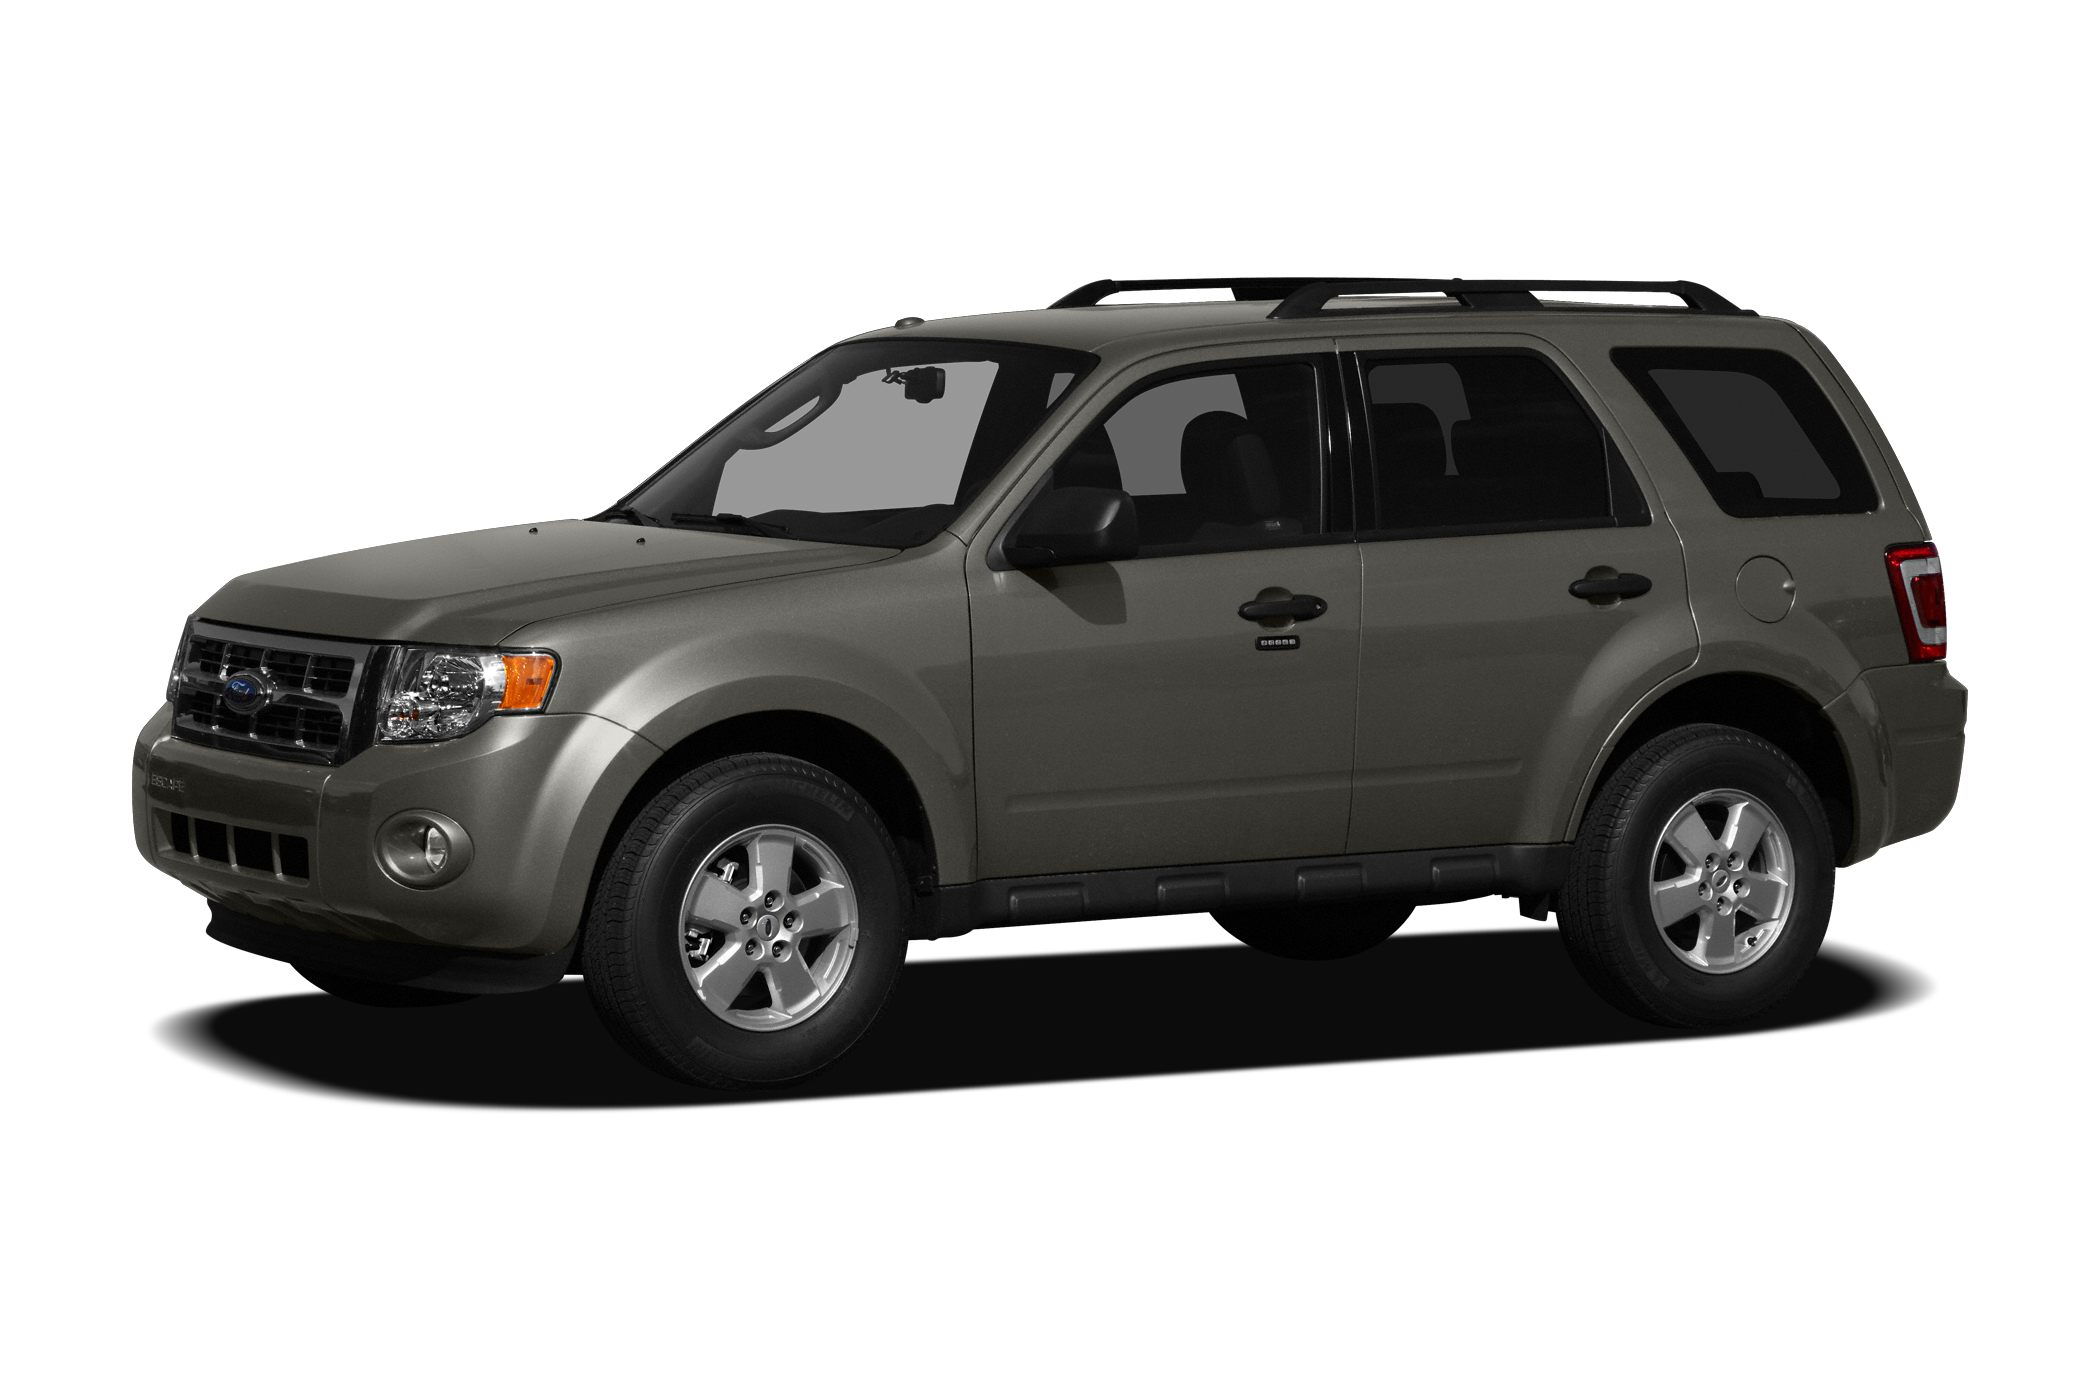 2010 Ford Escape XLT SUV for sale in Amarillo for $0 with 65,029 miles